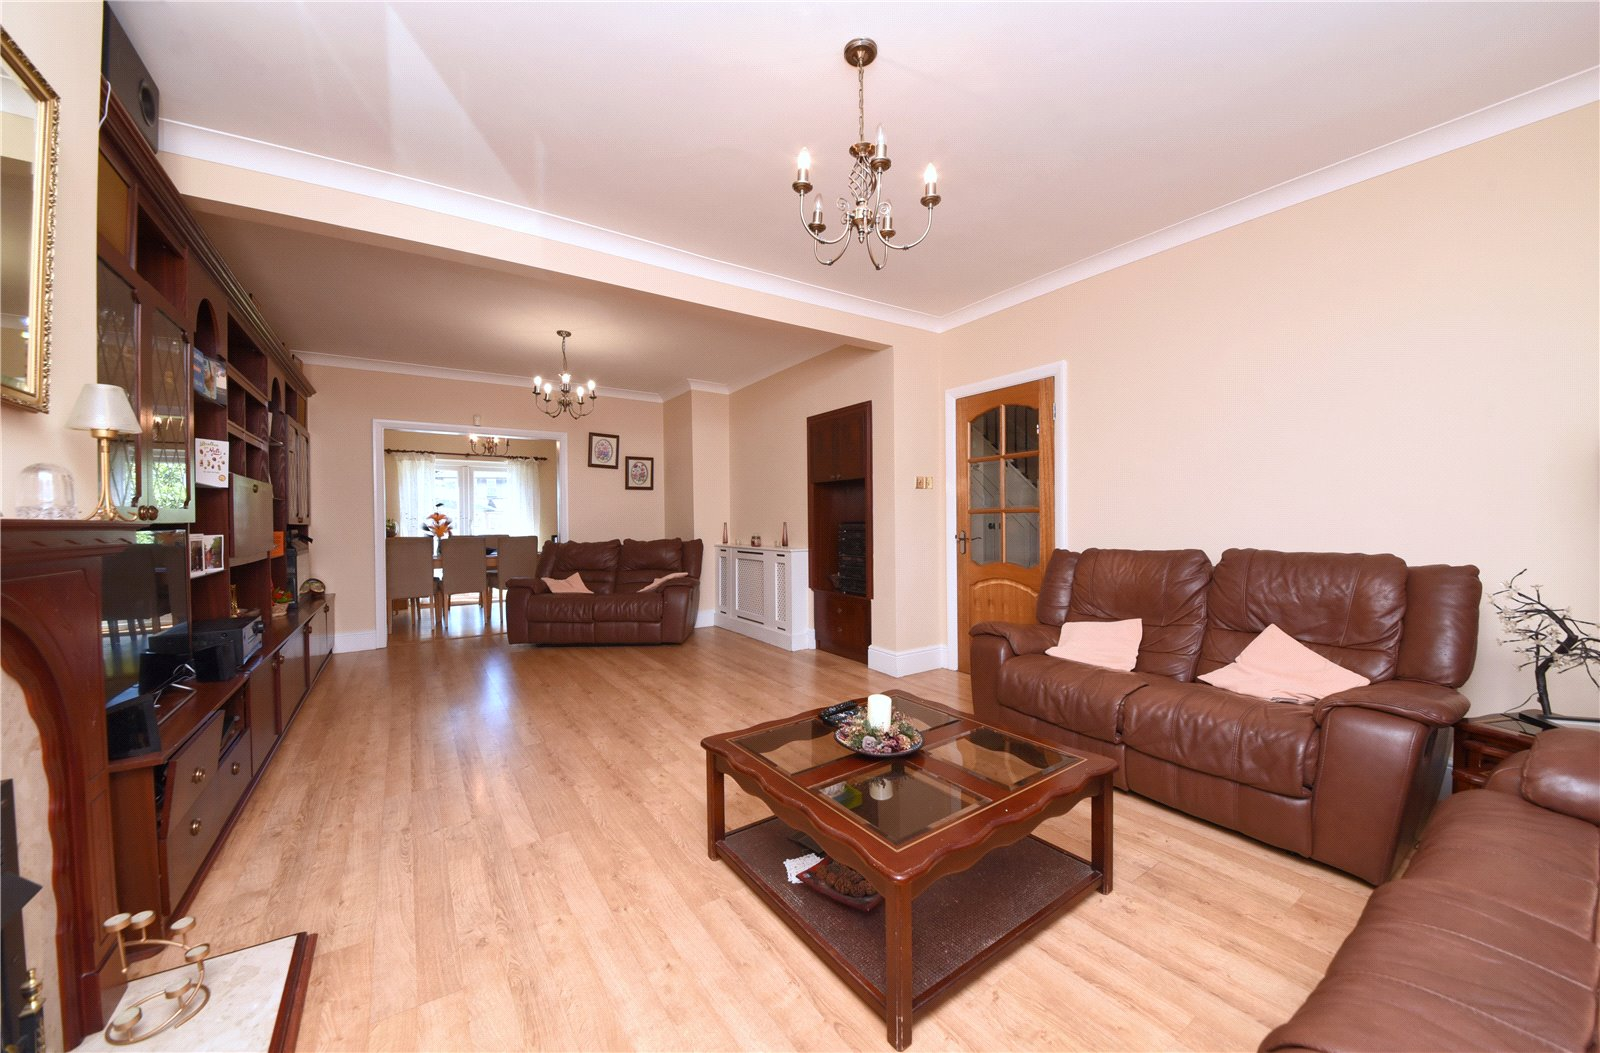 3 bed house for sale in Southgate, N14 4NY 0